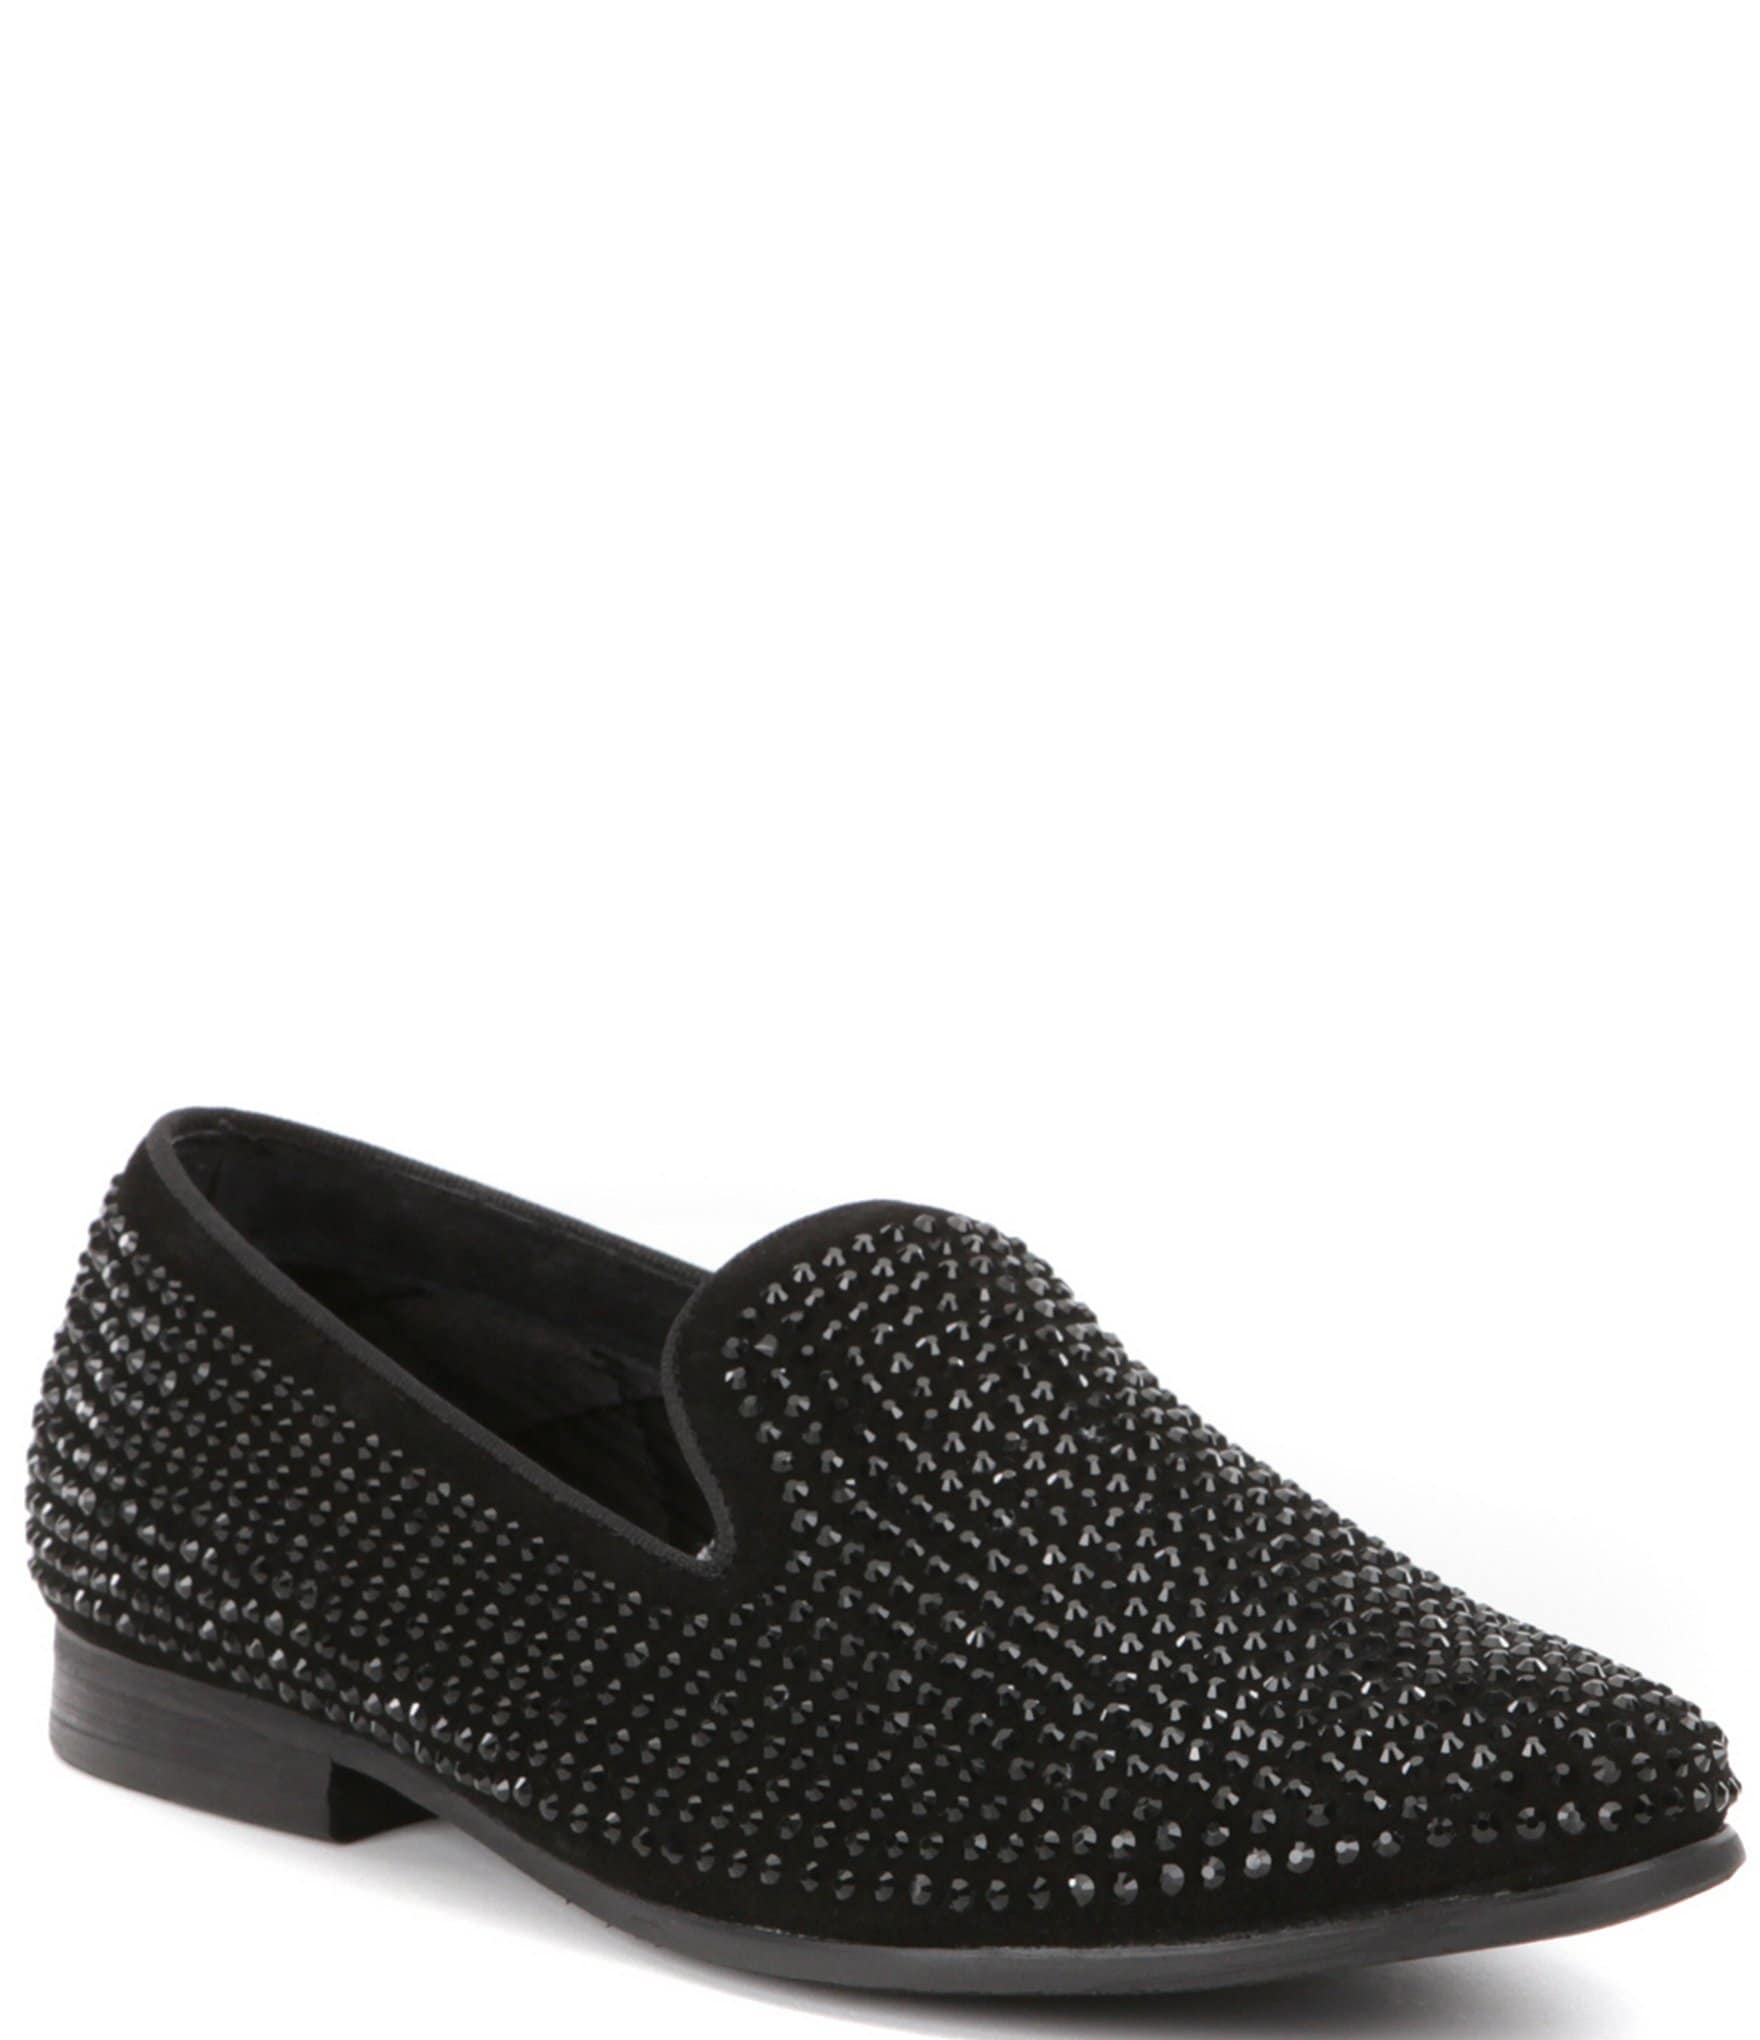 cae1bfa5e3e Steve Madden Men s Caviarr Crystal Embellishment Slip-On Loafers ...